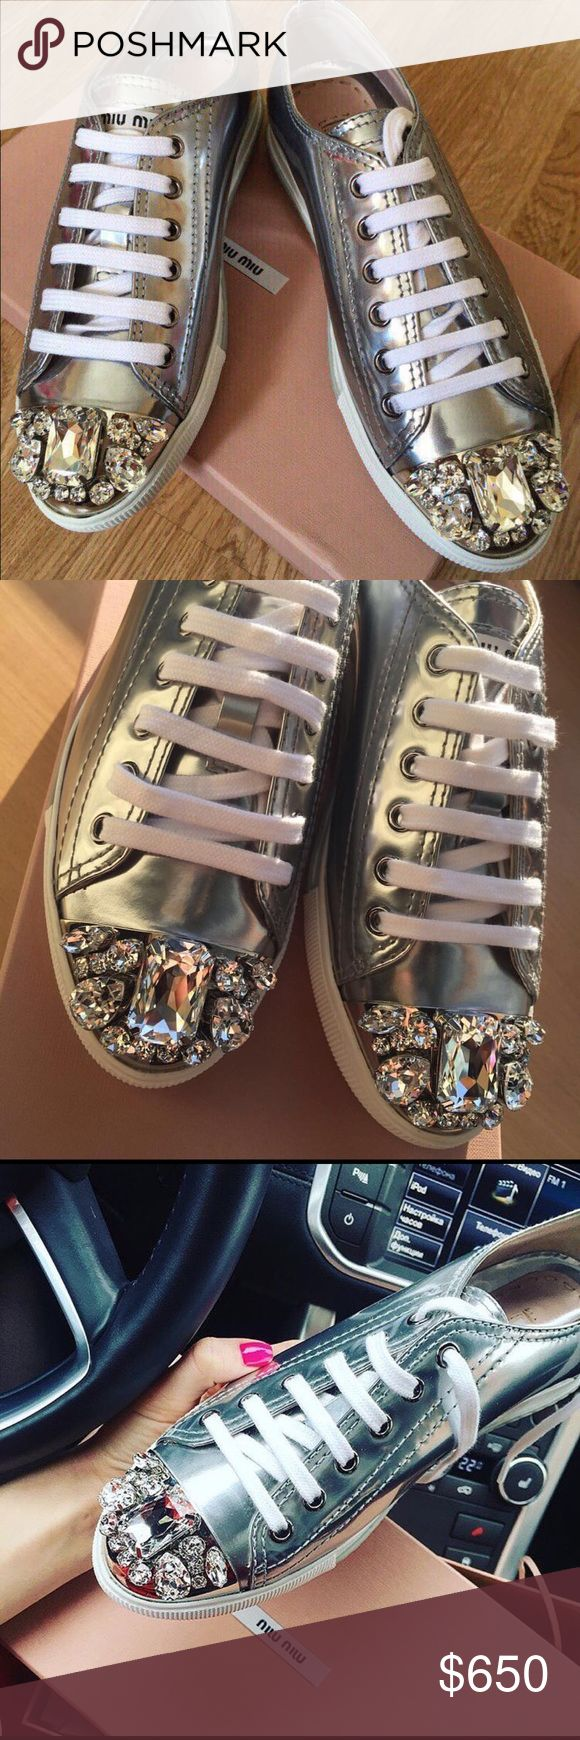 Miu miu sneakers Brand new with tags! 36.5 and 37.5 available Miu Miu Shoes Sneakers